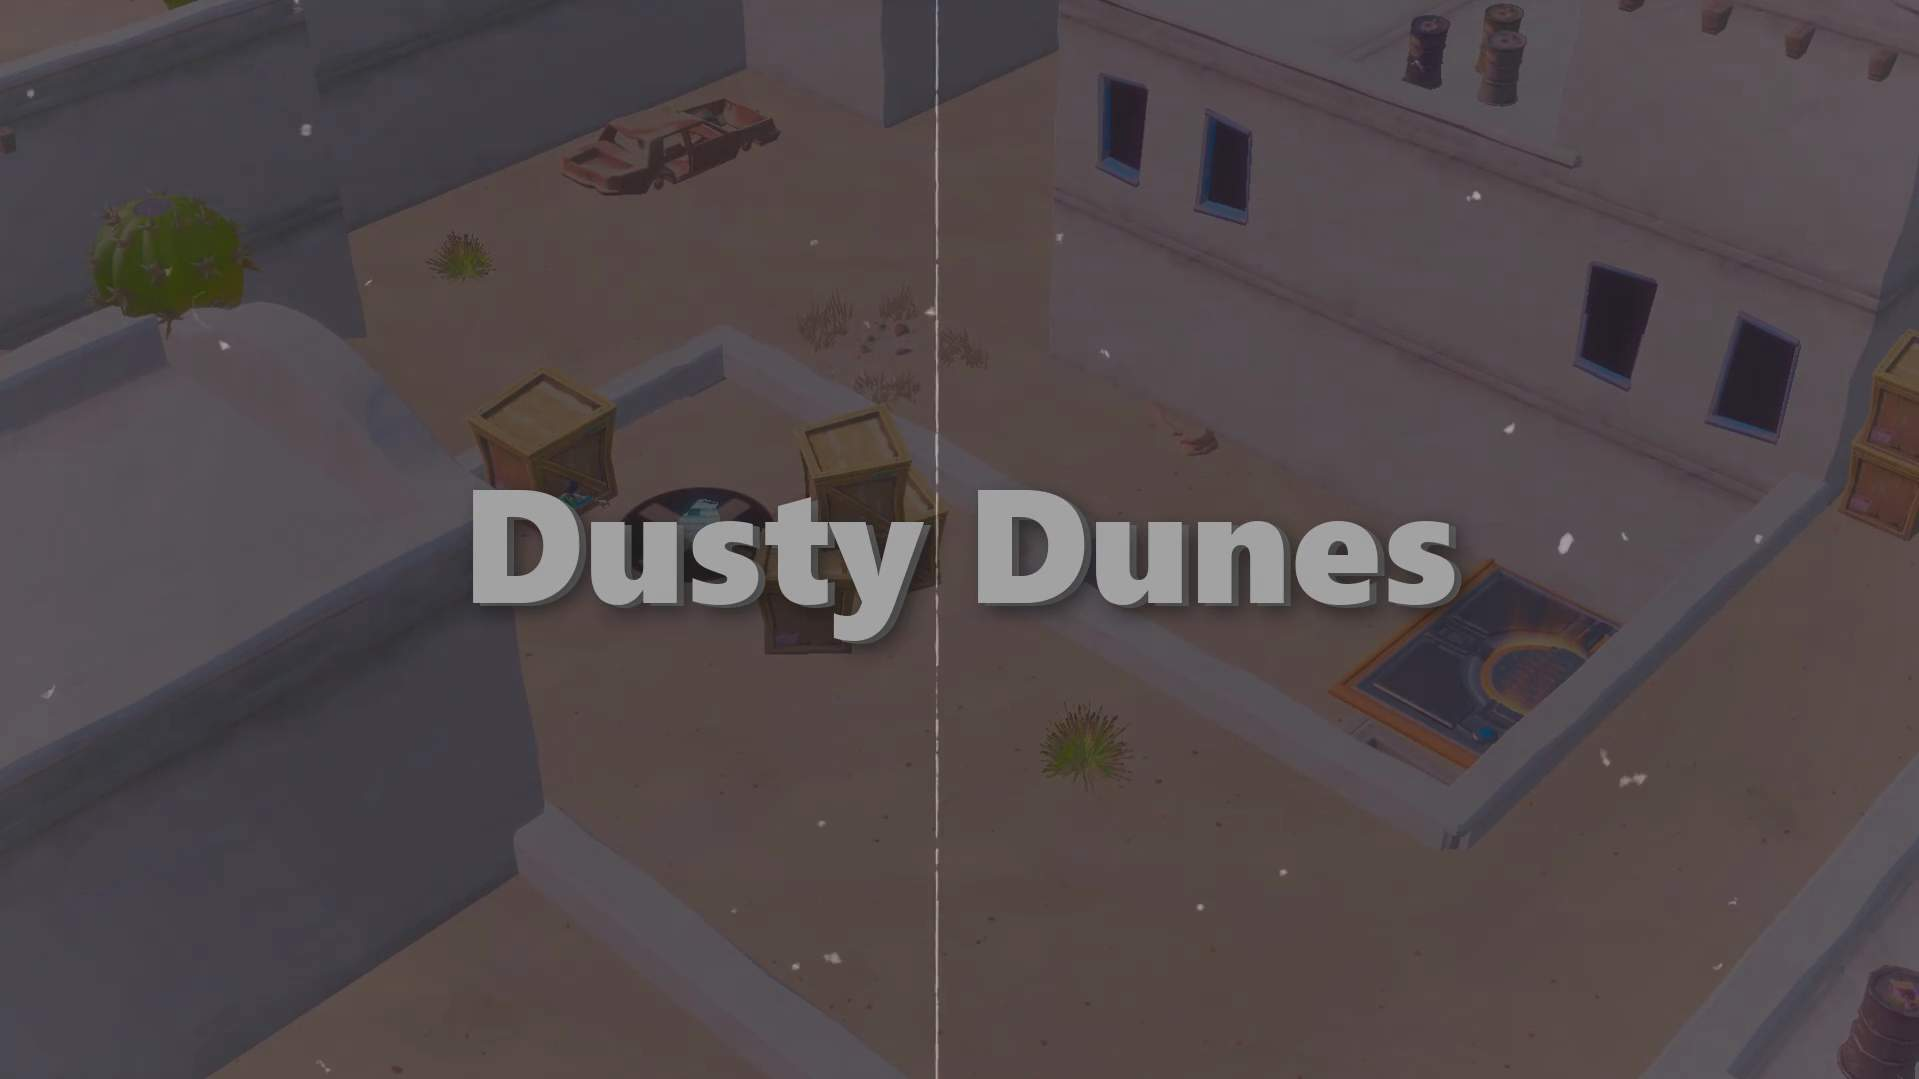 DUSTY DUNES // SEARCH & DESTROY